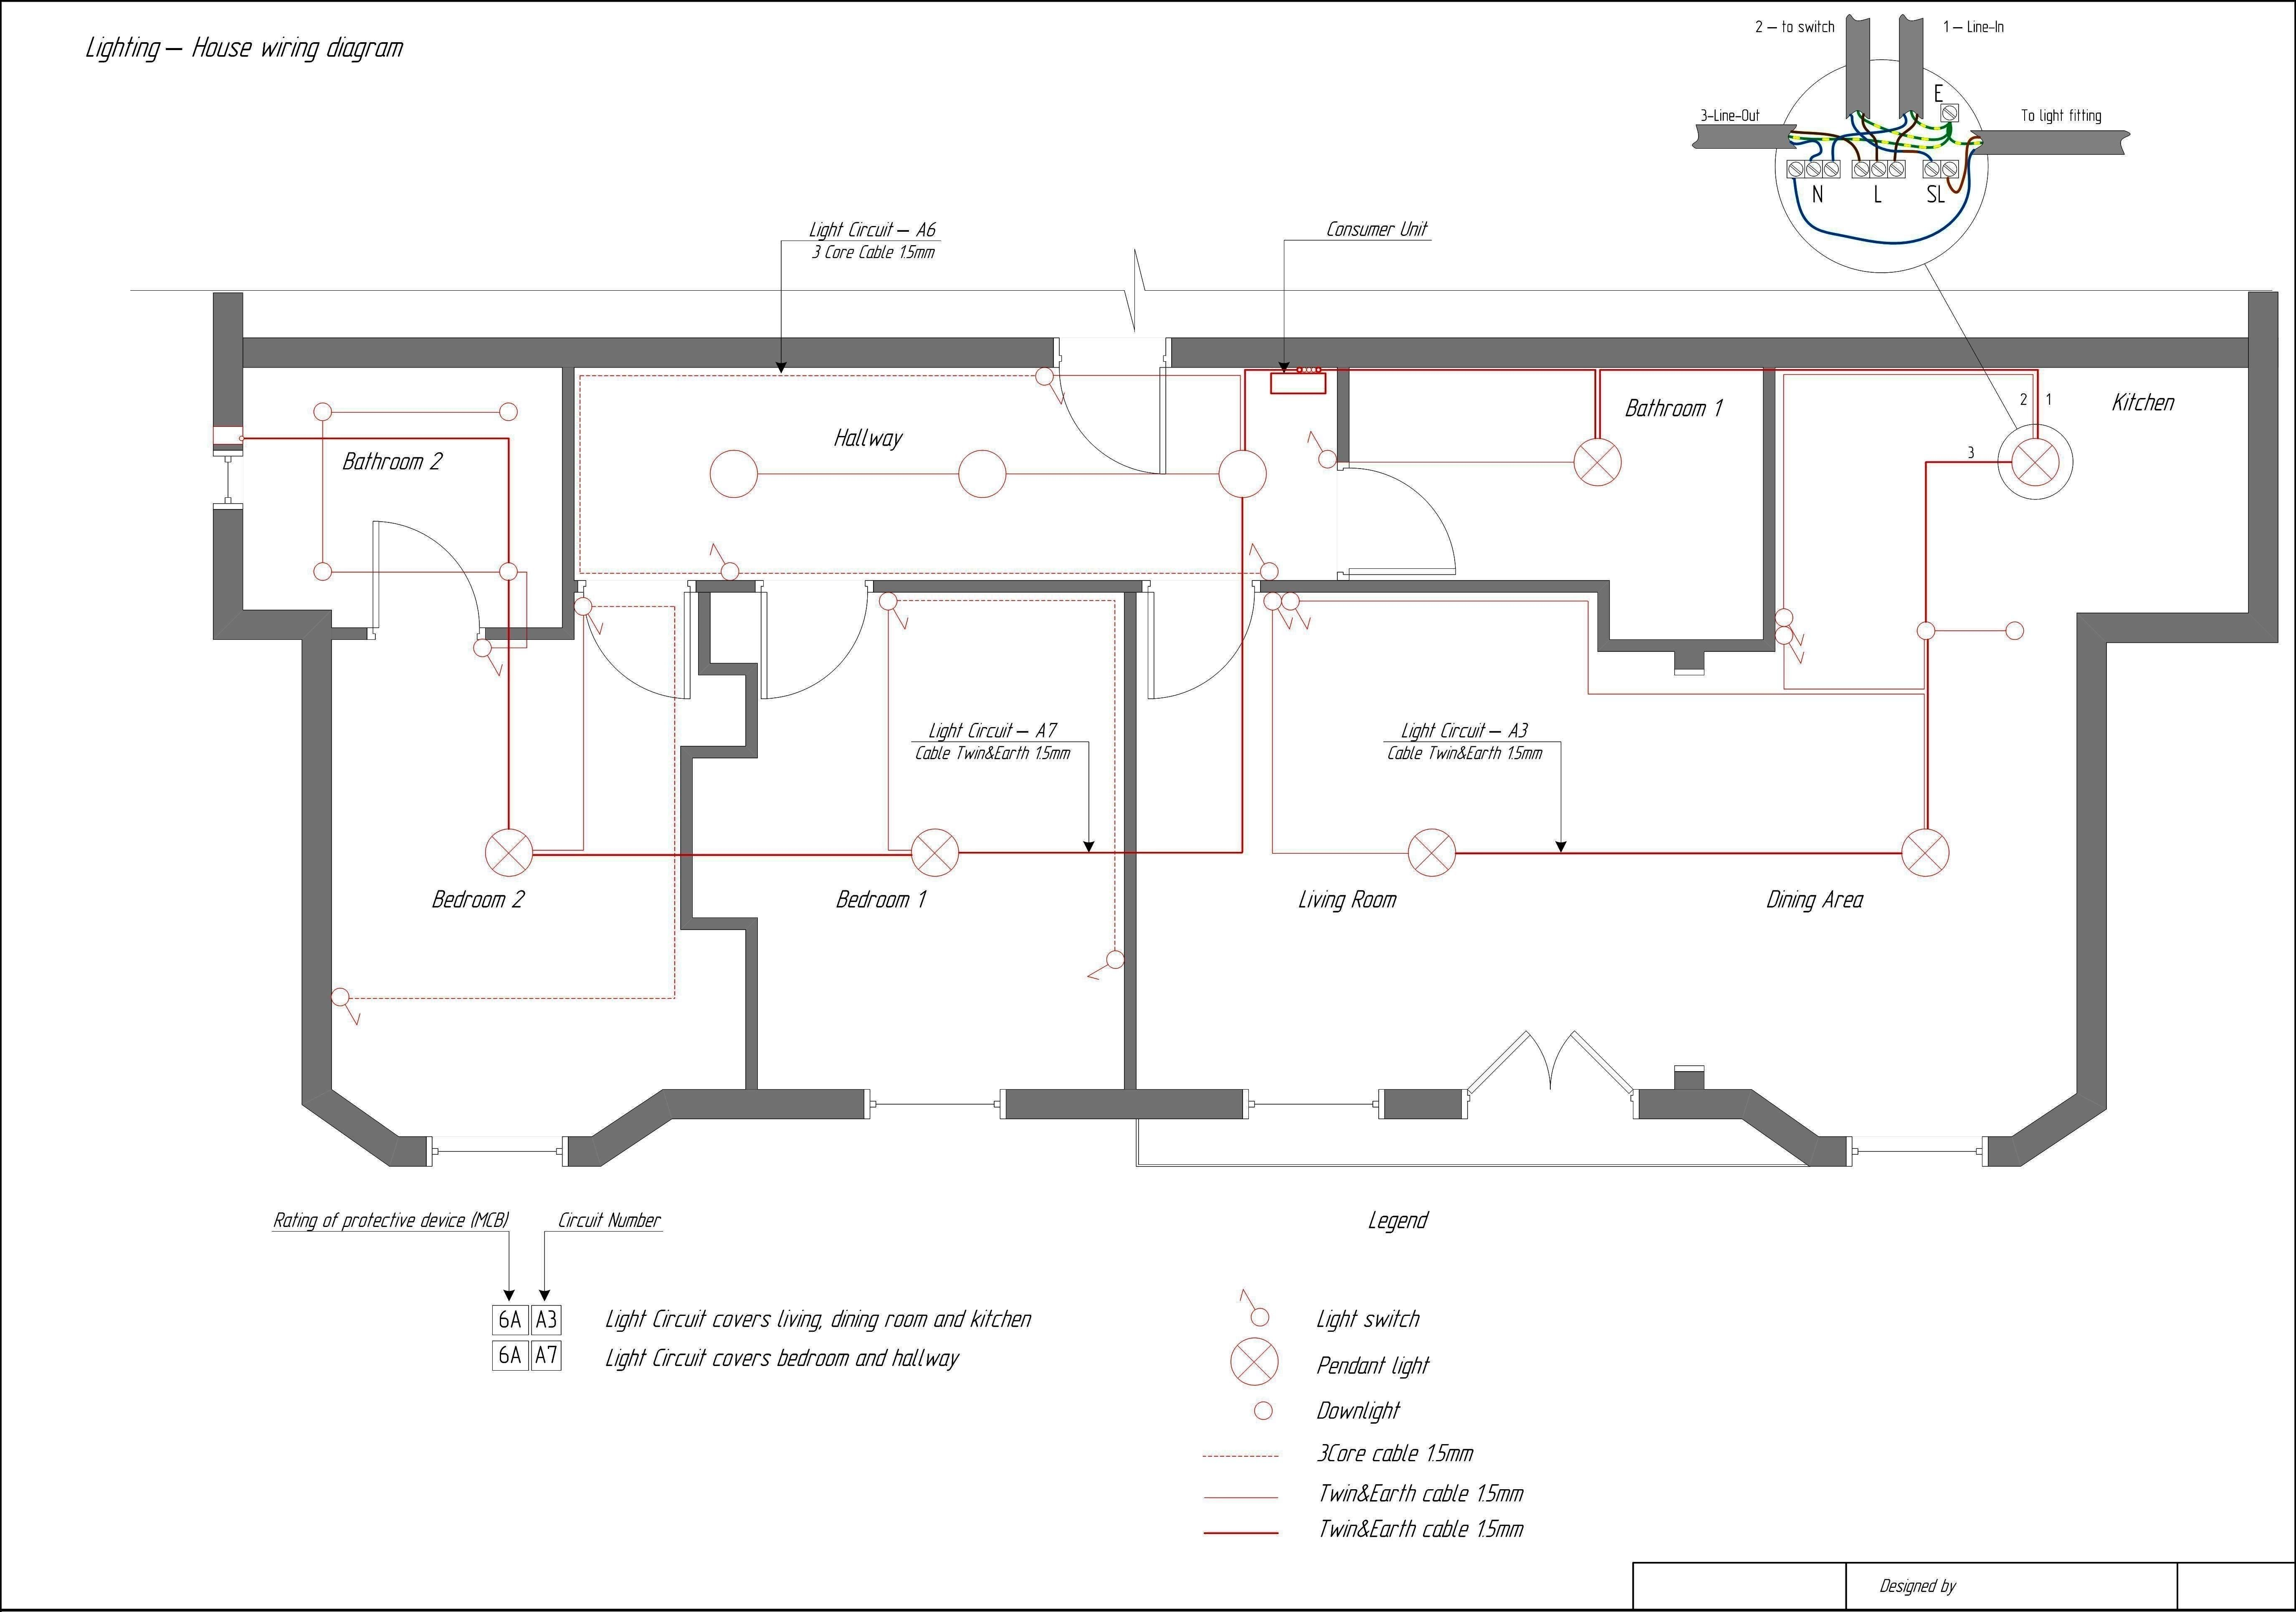 Unique House Wiring For Beginners Diagram Wiringdiagram Diagramming Diagramm Visuals Visua House Wiring Electrical Circuit Diagram Home Electrical Wiring